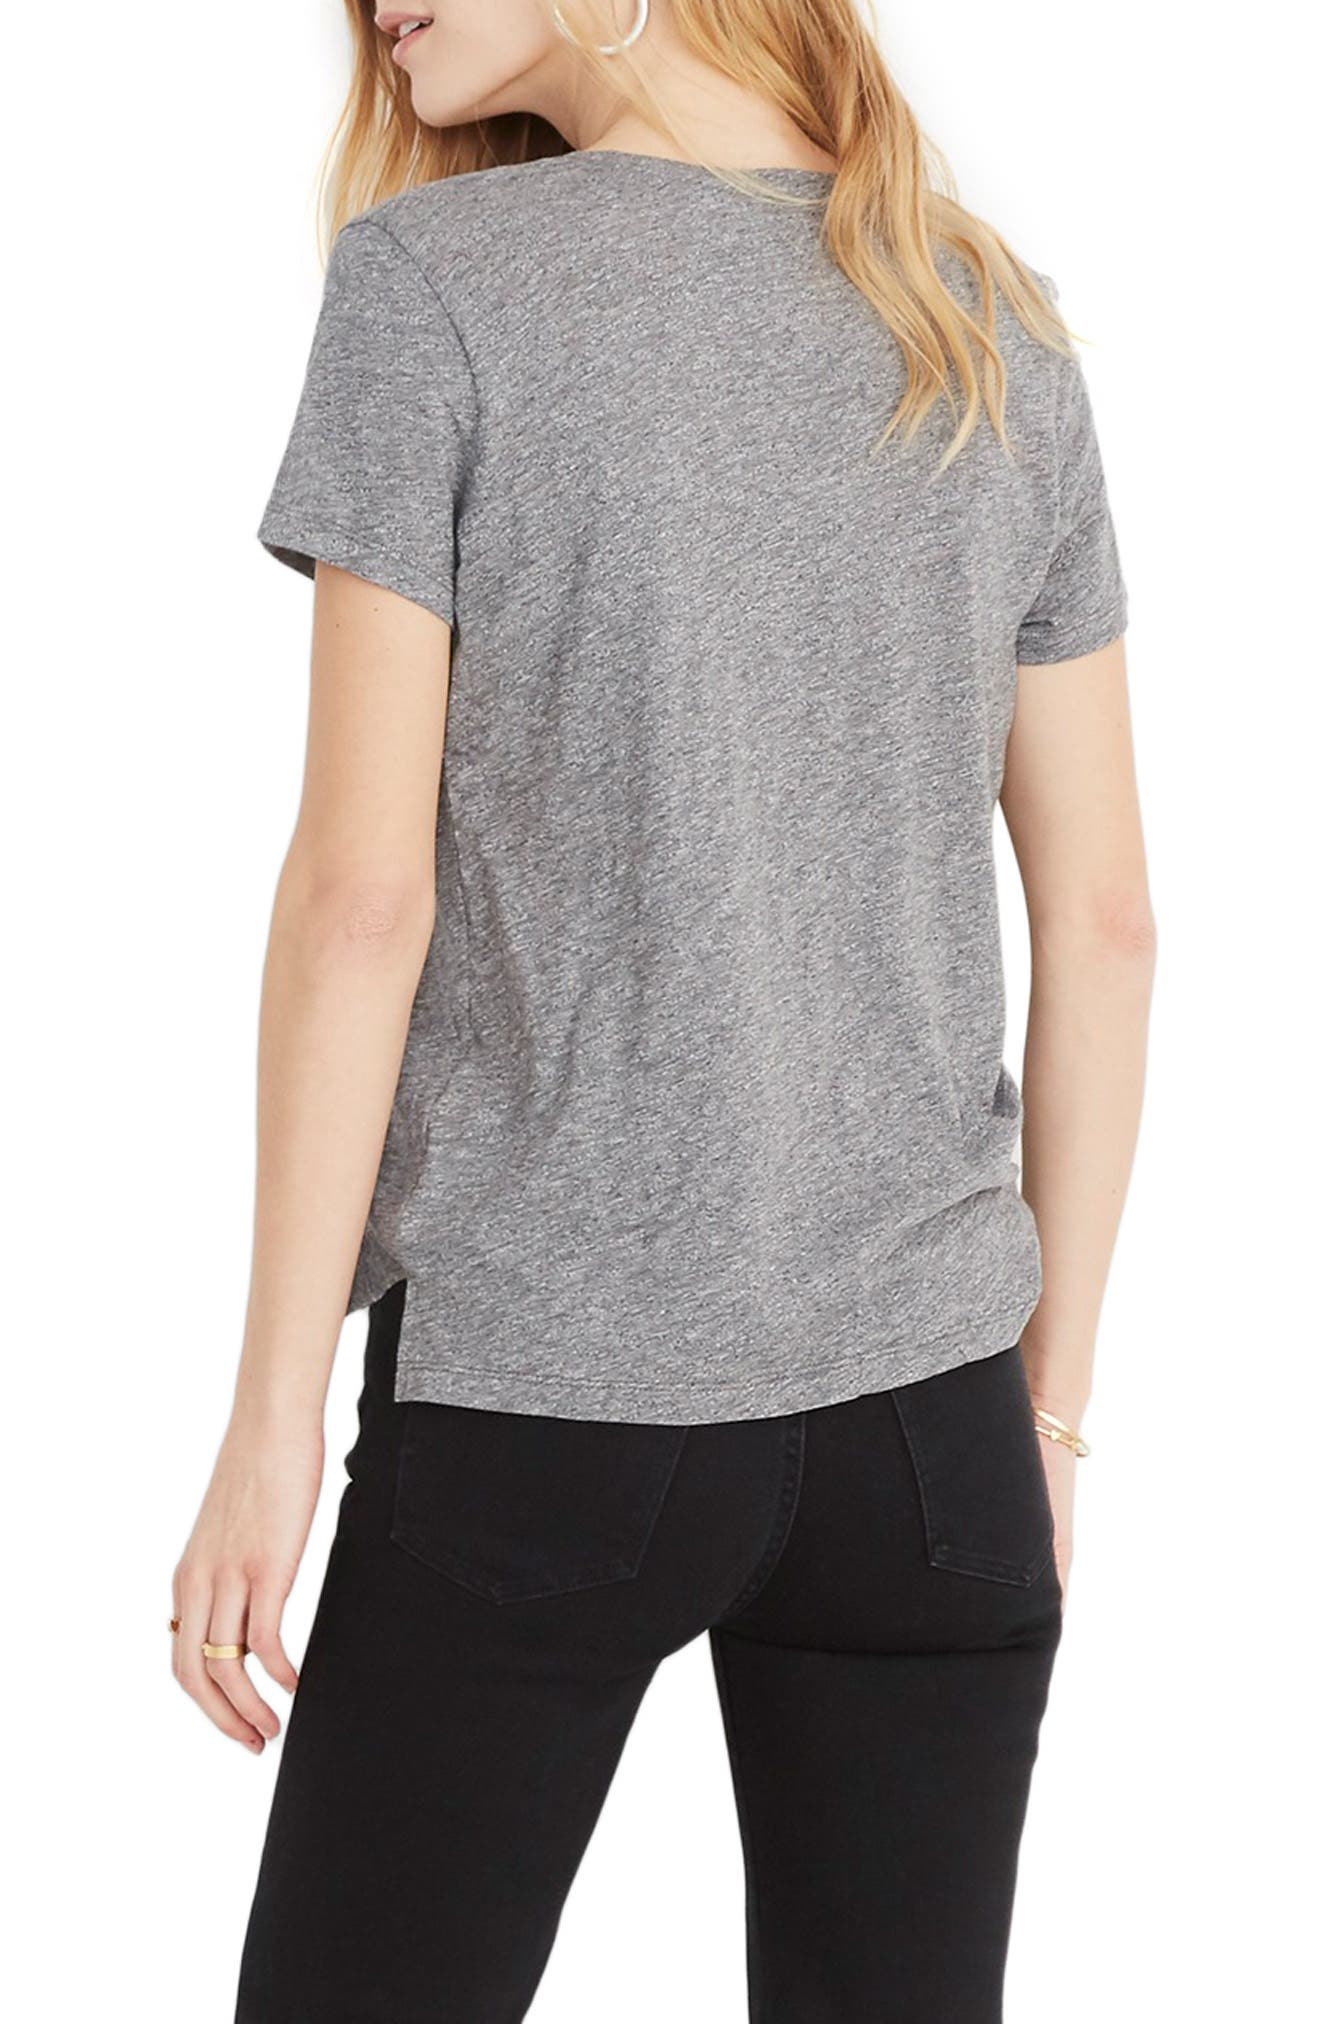 MADEWELL, Whisper Cotton V-Neck Pocket Tee, Alternate thumbnail 2, color, HEATHER MERCURY